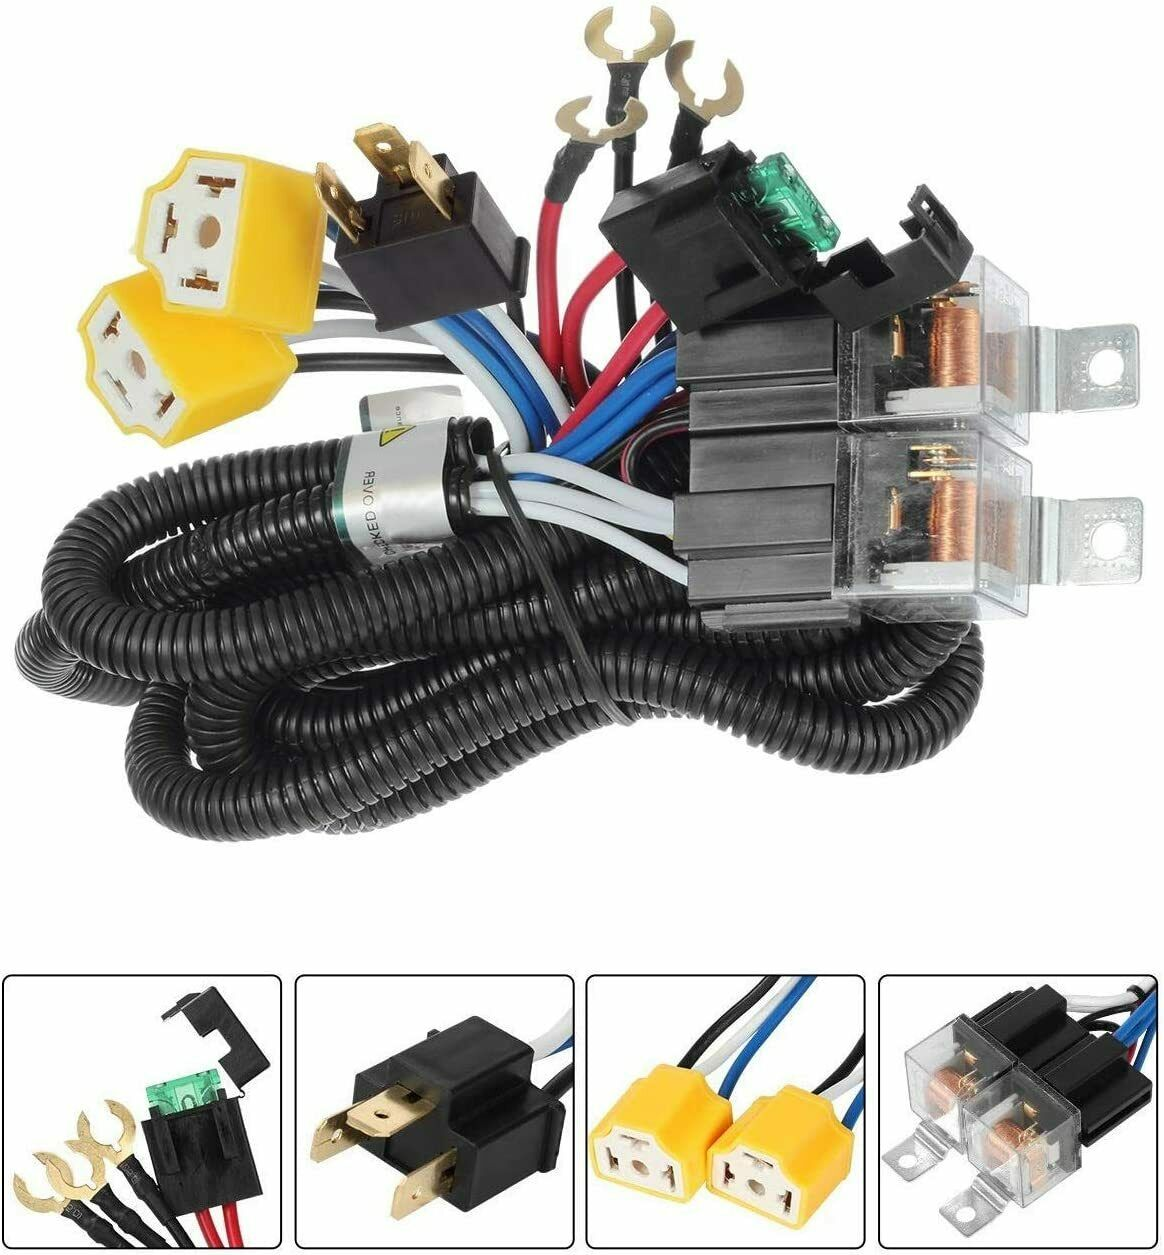 Compatible with Jeep Wrangler YJ truck,Jeep Cherokee XJ truck,Toyota pickup H6054 H5054 H6054LL 6014 6052 6053 LED Headlights Wiring Harness H4 9003 Headlight Relay Wiring Harness Kit